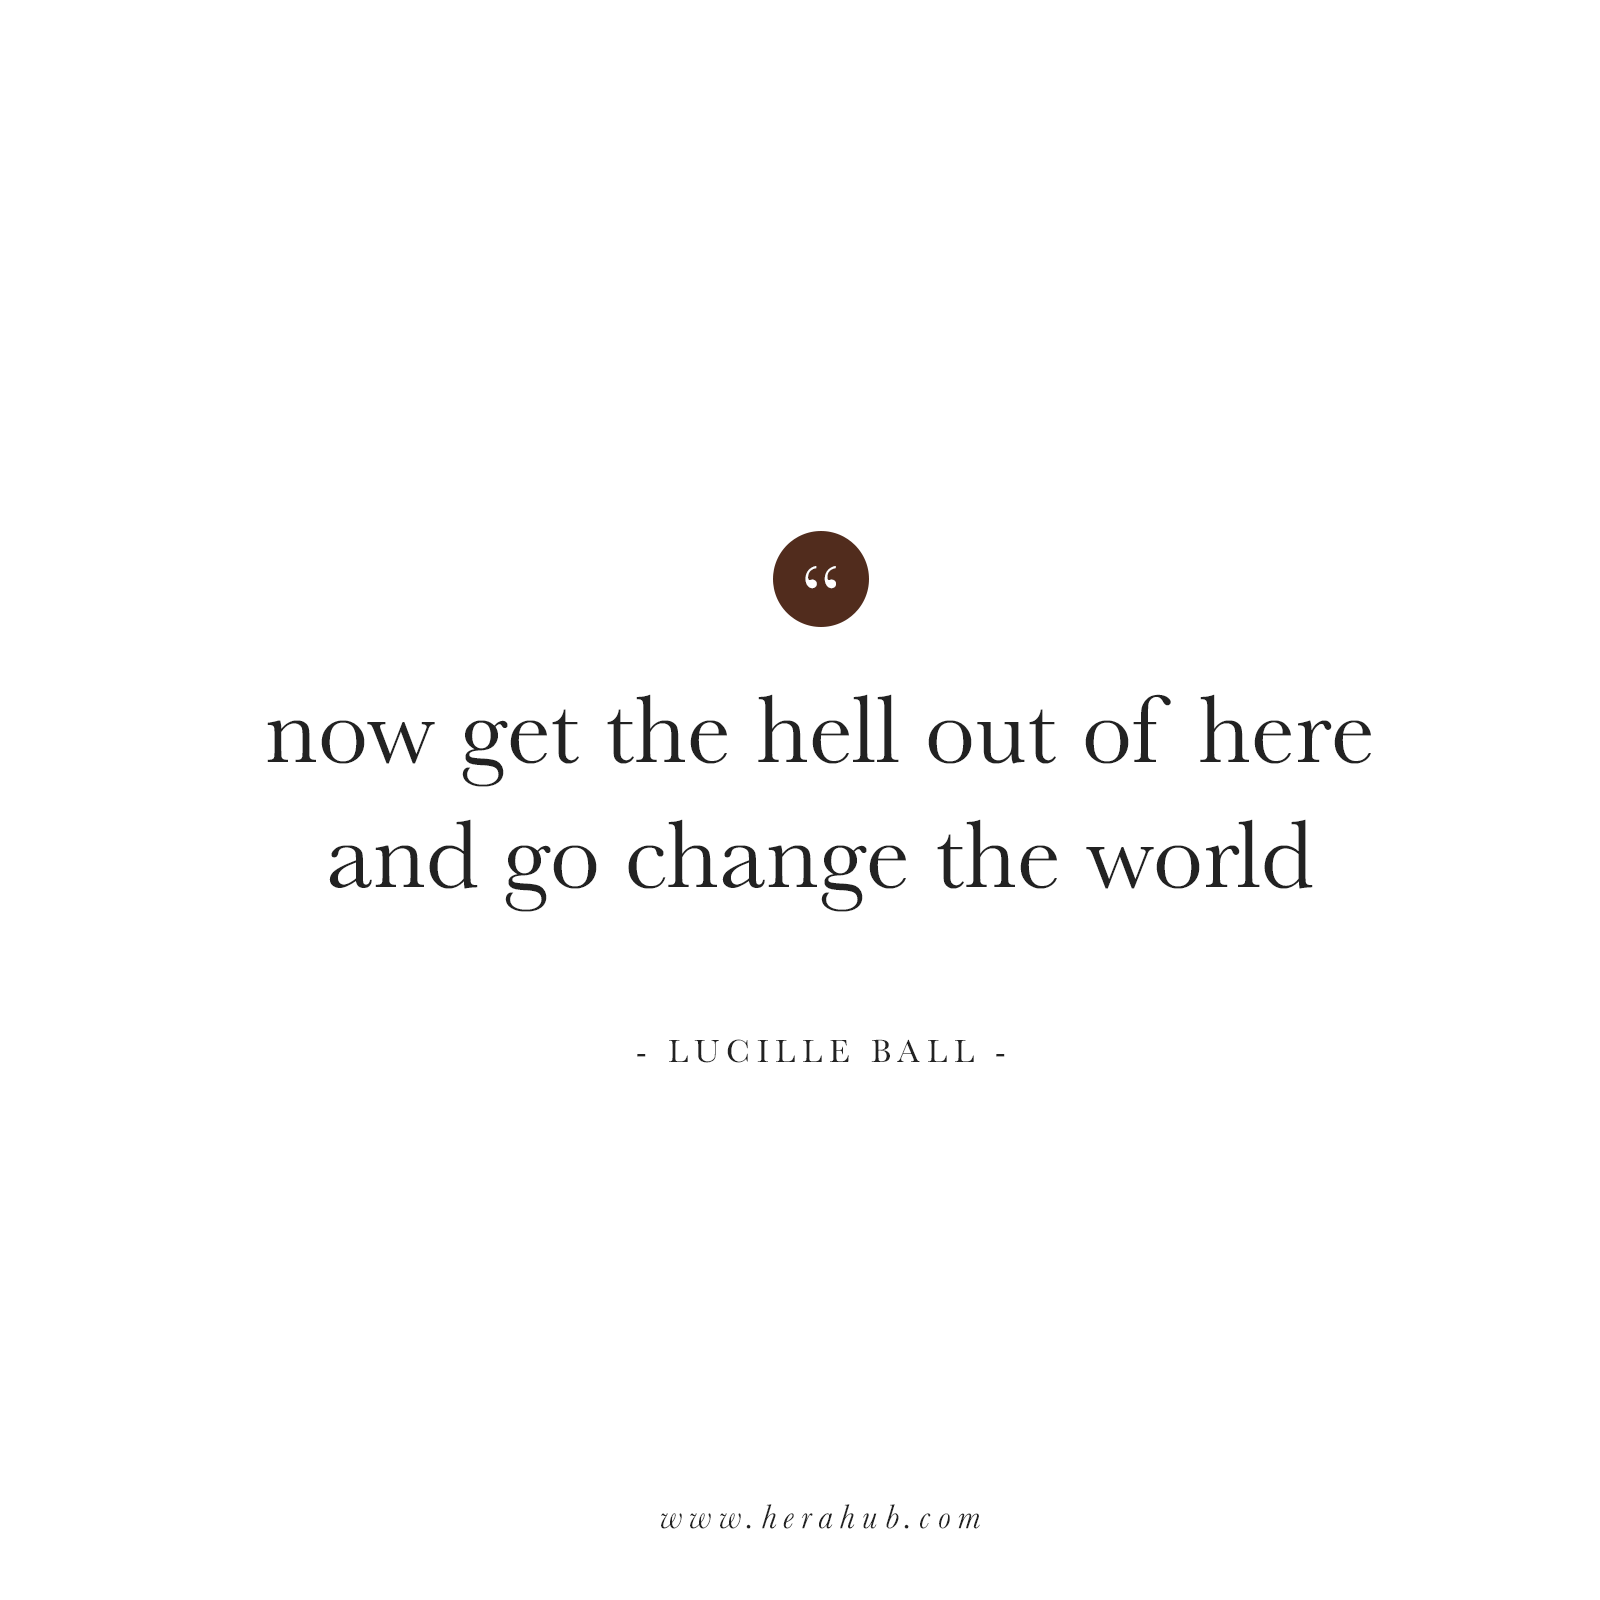 Lucille-Ball-Quote-Hera-Hub